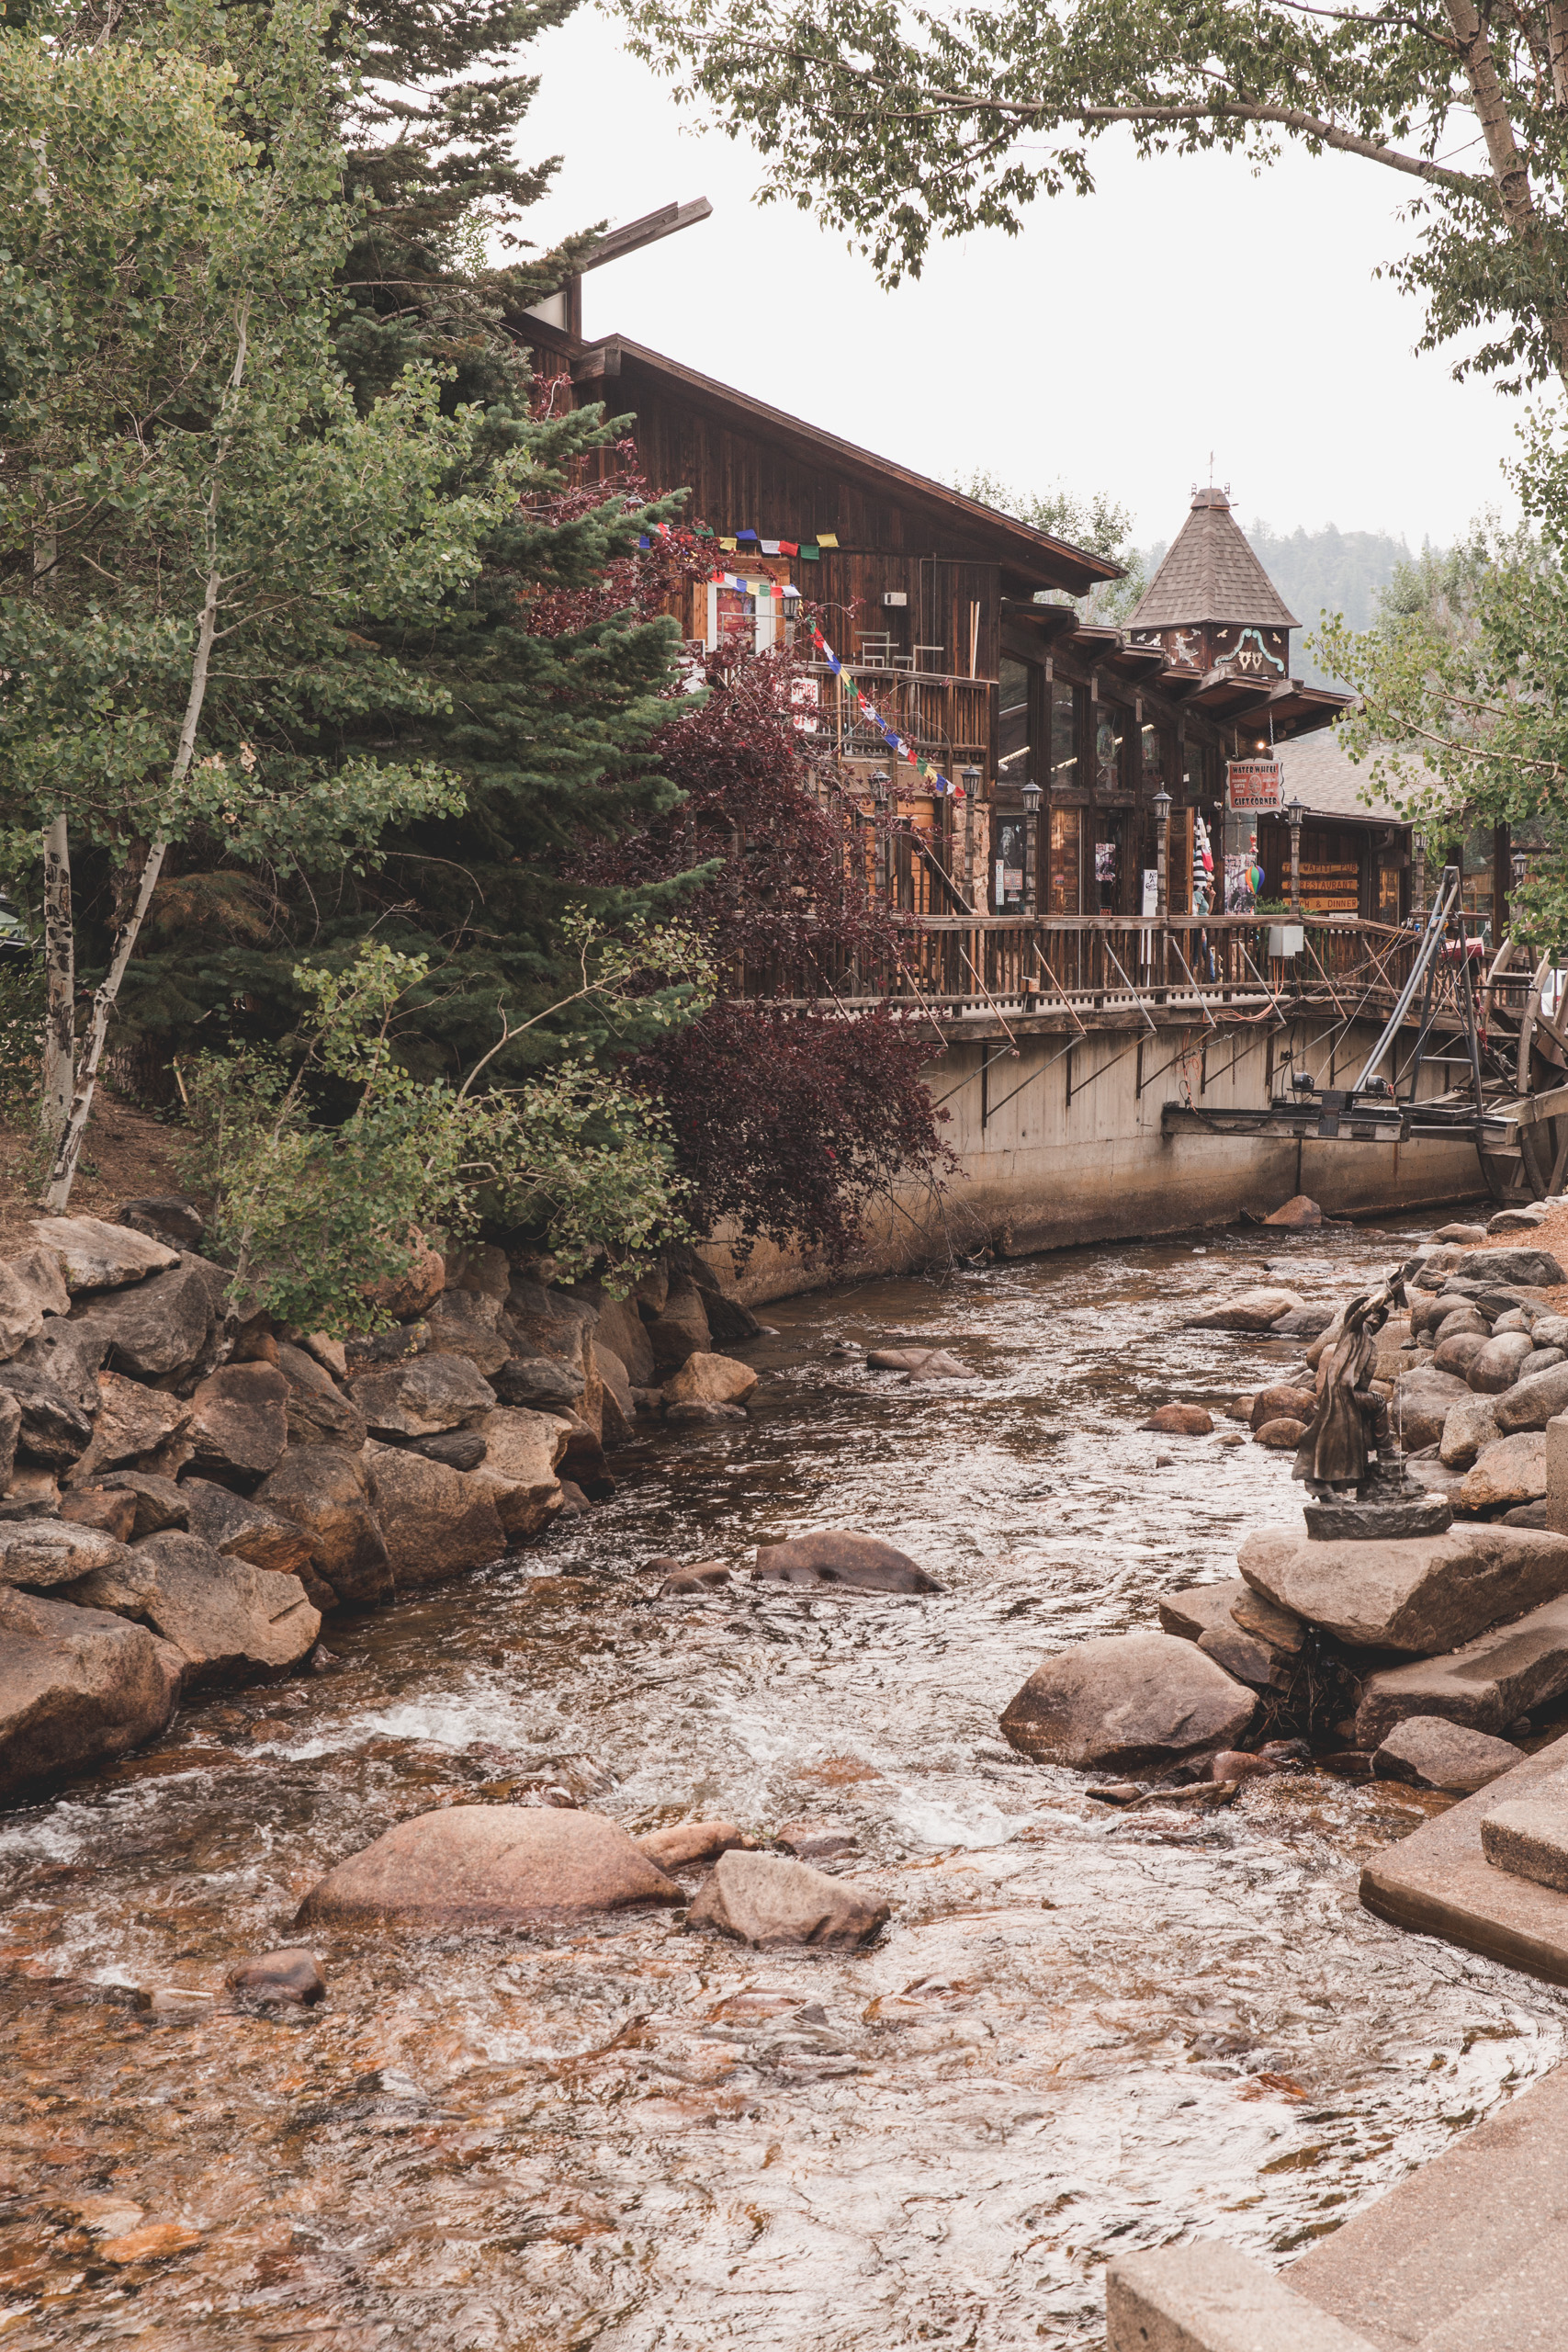 Wooden store on a river surrounded by trees and rocks in Estes Park in Colorado